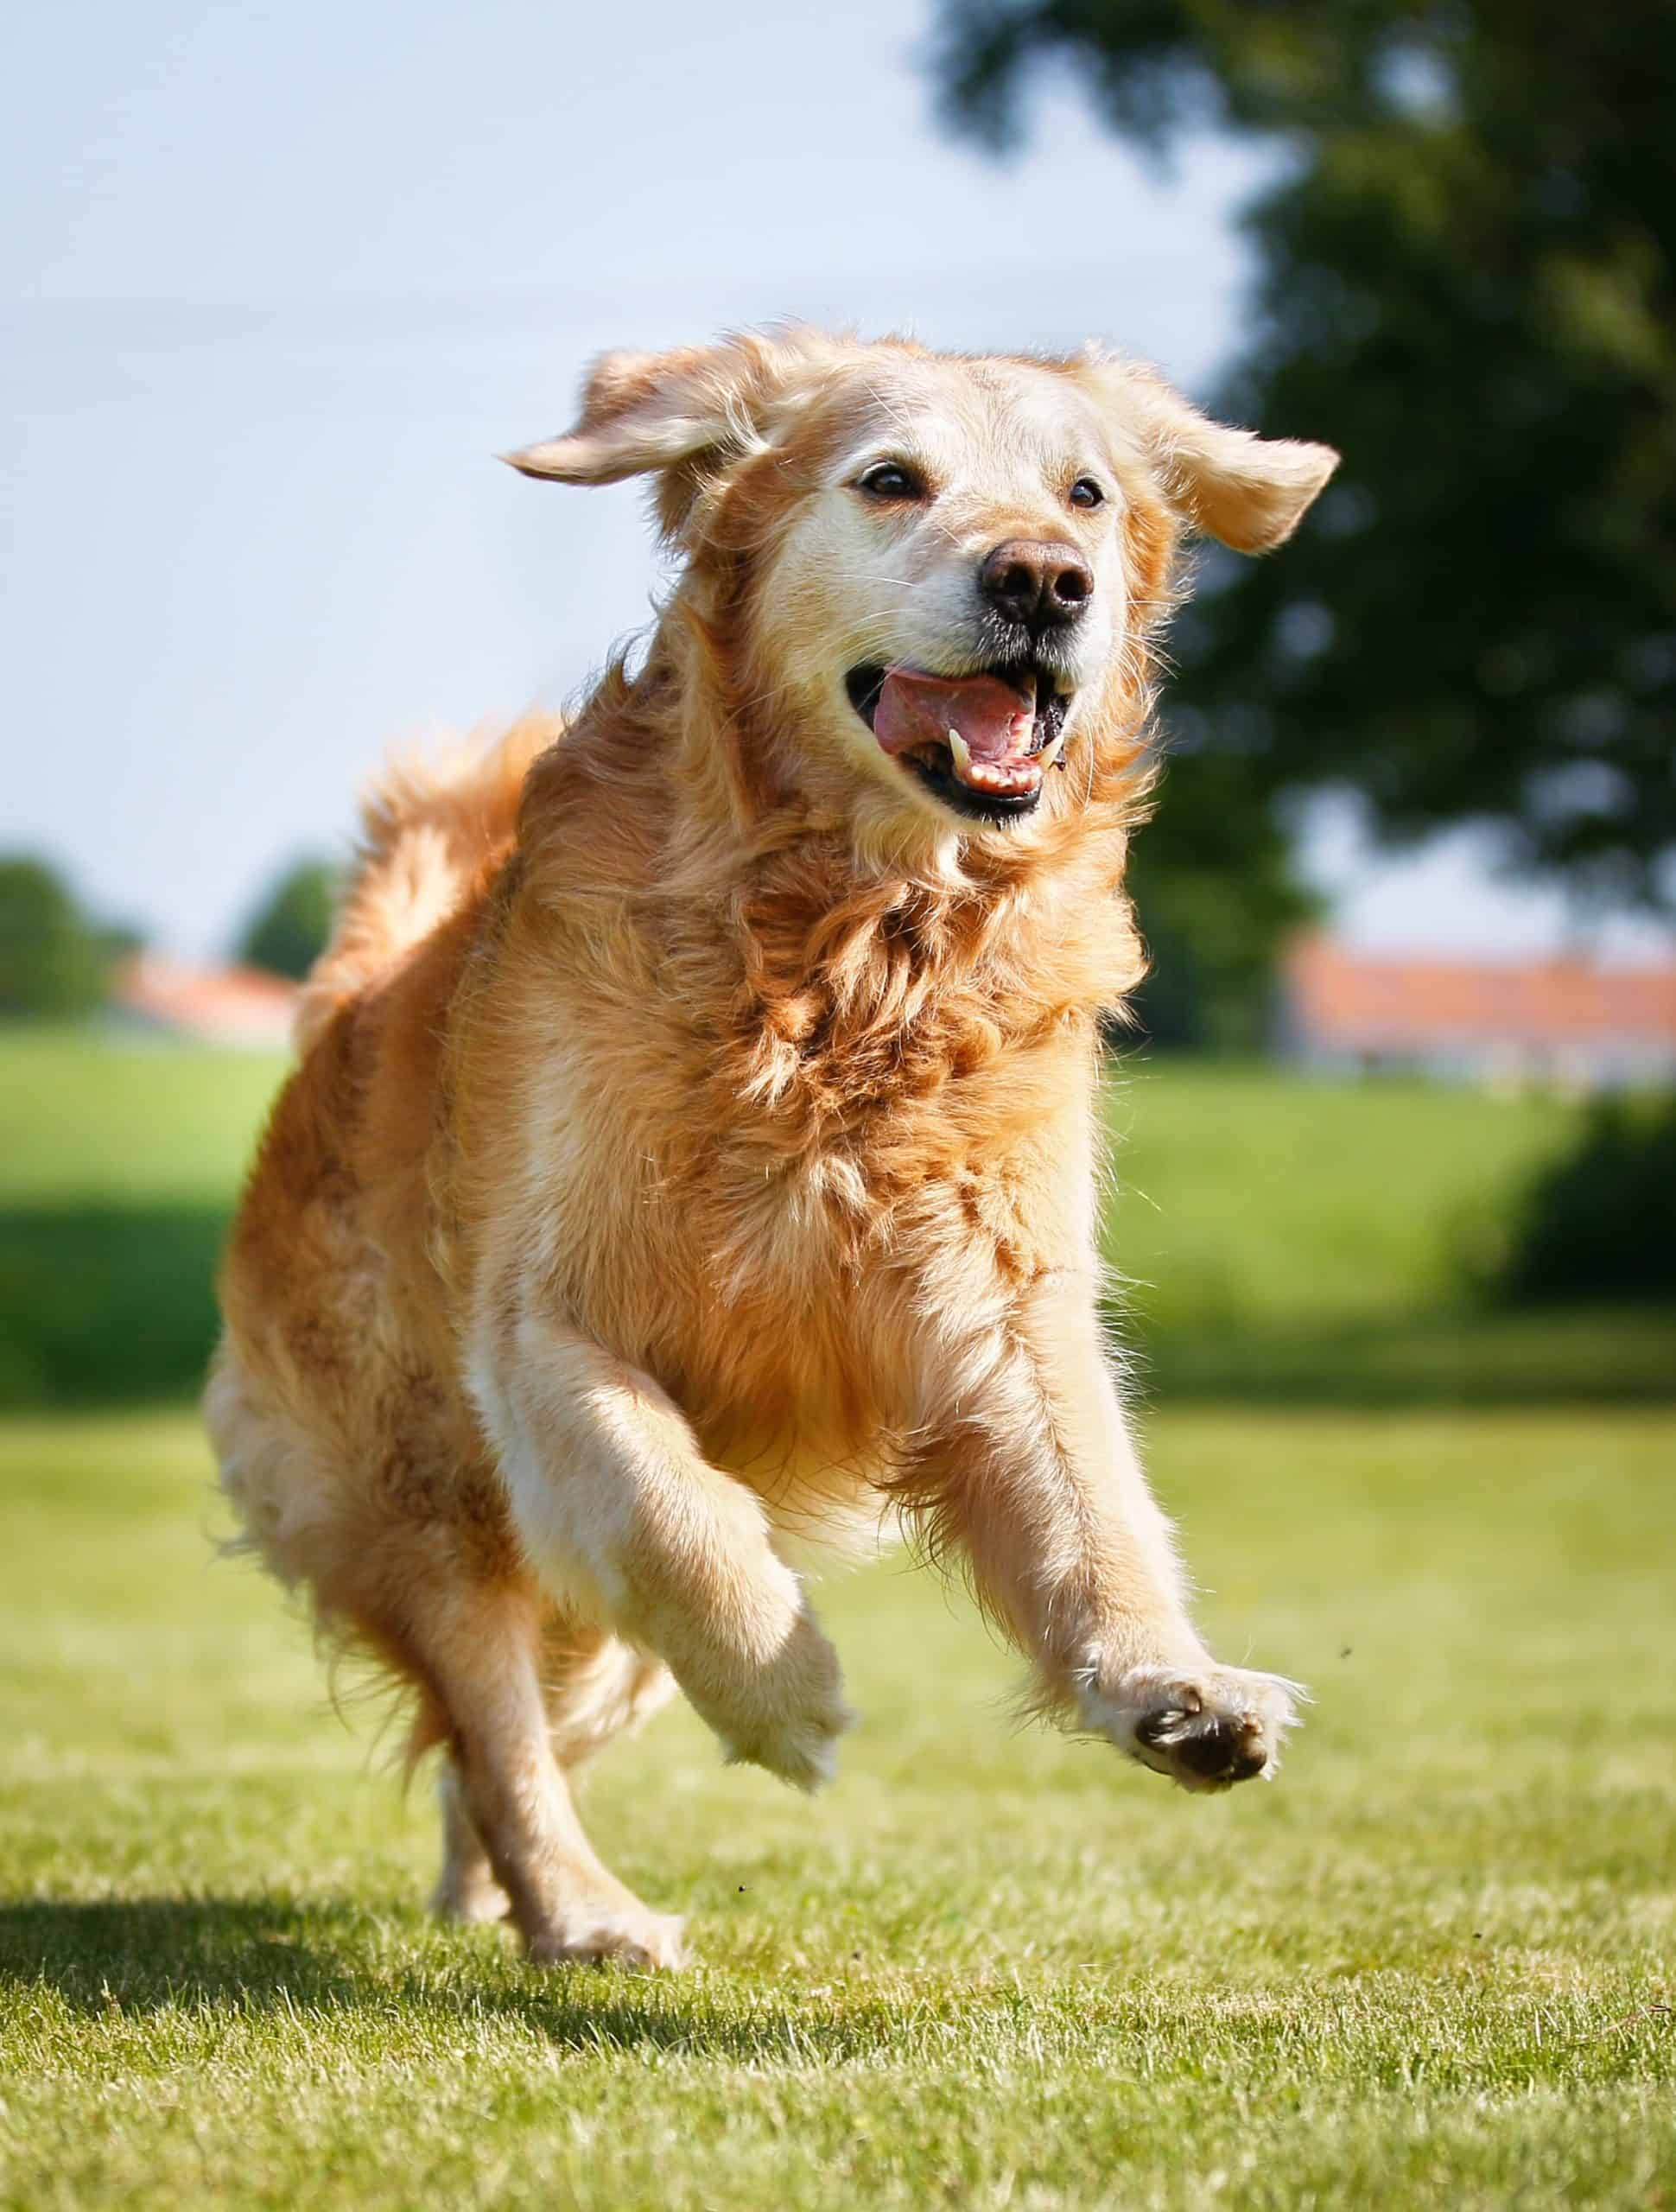 Older golden retriever runs outside. Keeping older dogs active helps ensure that they don't deteriorate.